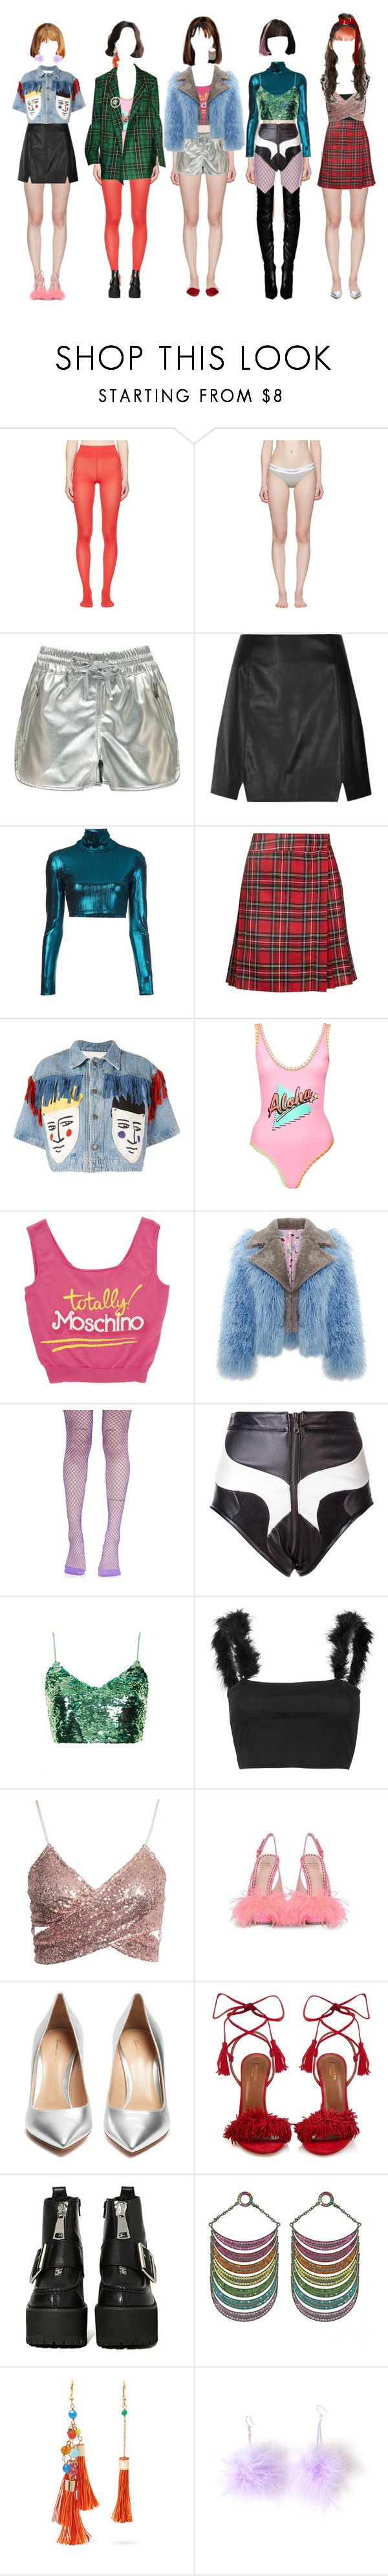 """""""{ PULP } Wild Style - Dance scene"""" by vxxo ❤ liked on Polyvore featuring Gucci, Calvin Klein Underwear, Boohoo, River Island, Alexander Lewis, Topshop, JC de Castelbajac, Moschino, Leg Avenue and Moonspoon Saloon"""